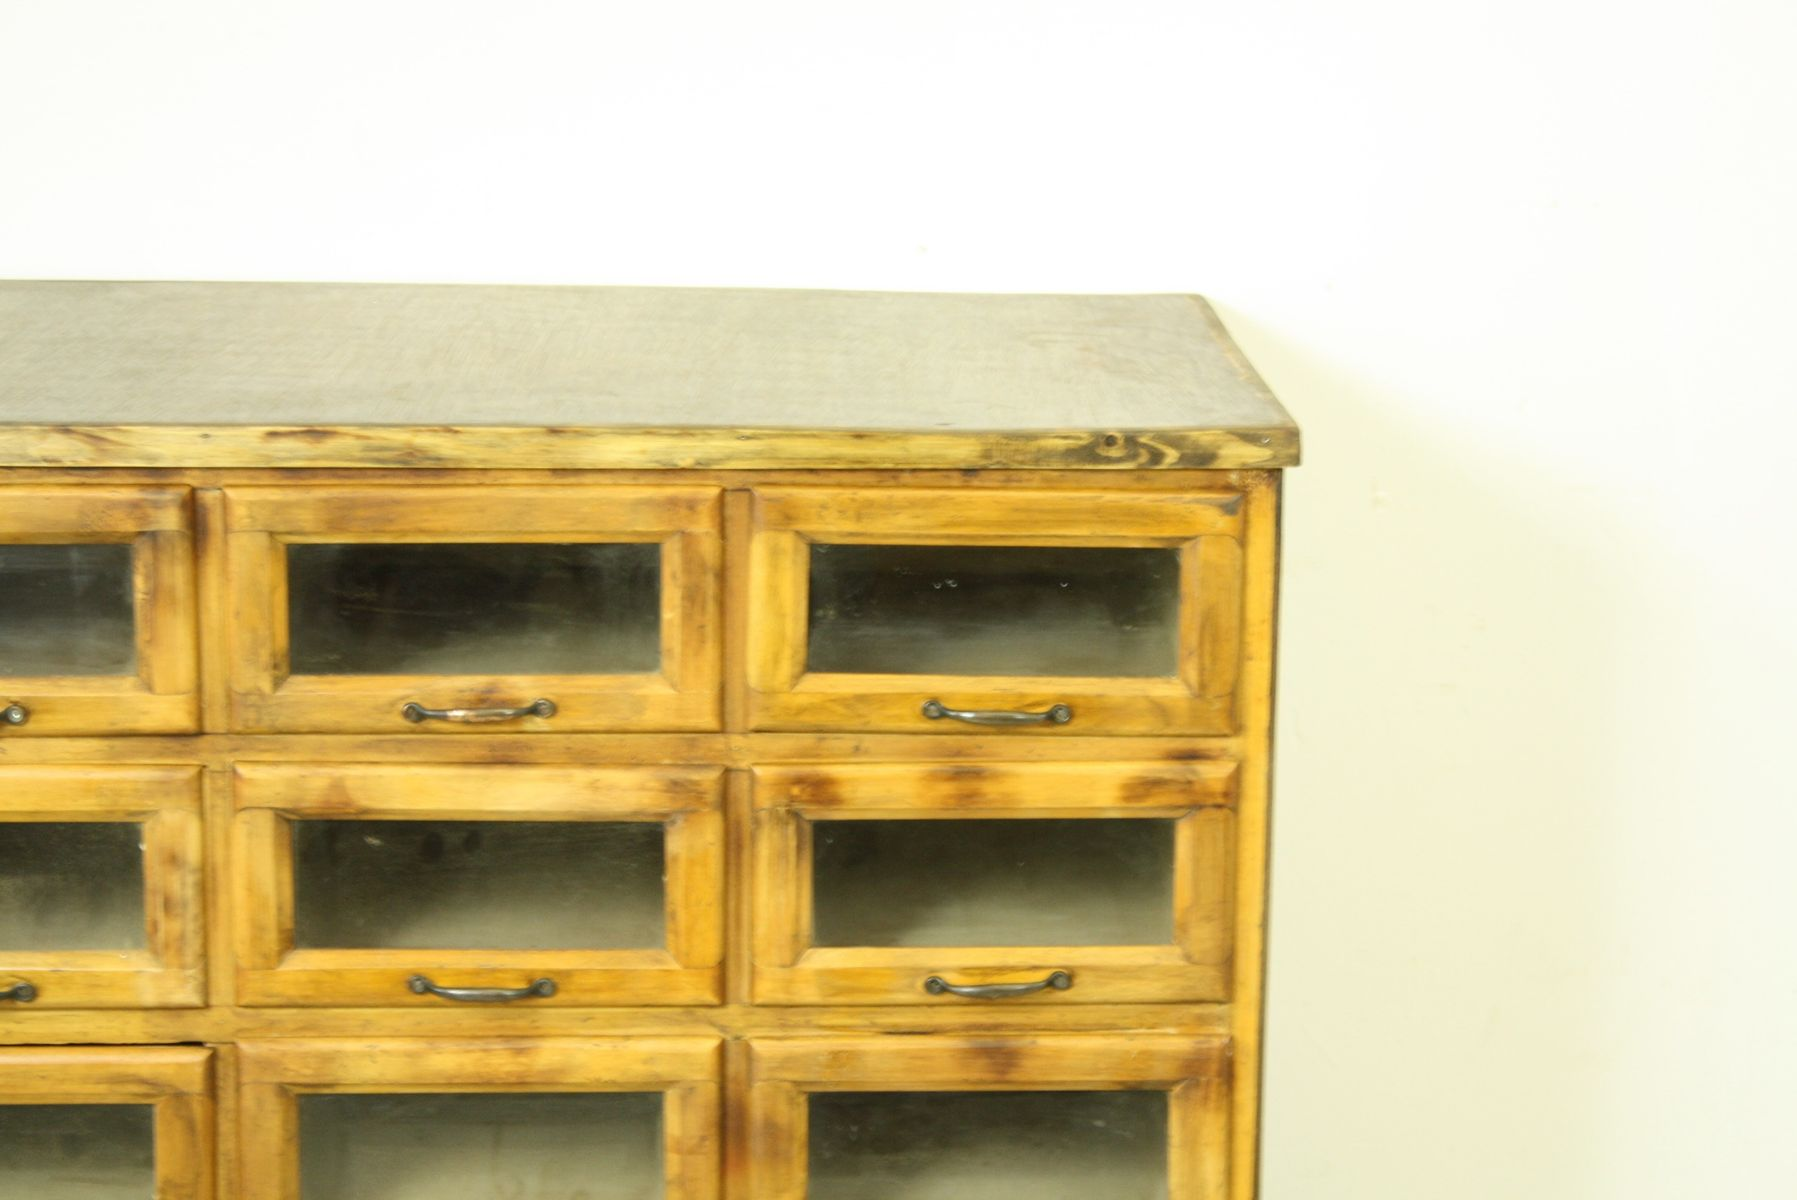 Vintage british 15 drawer oak haberdashery cabinet for for British traditions kitchen cabinets